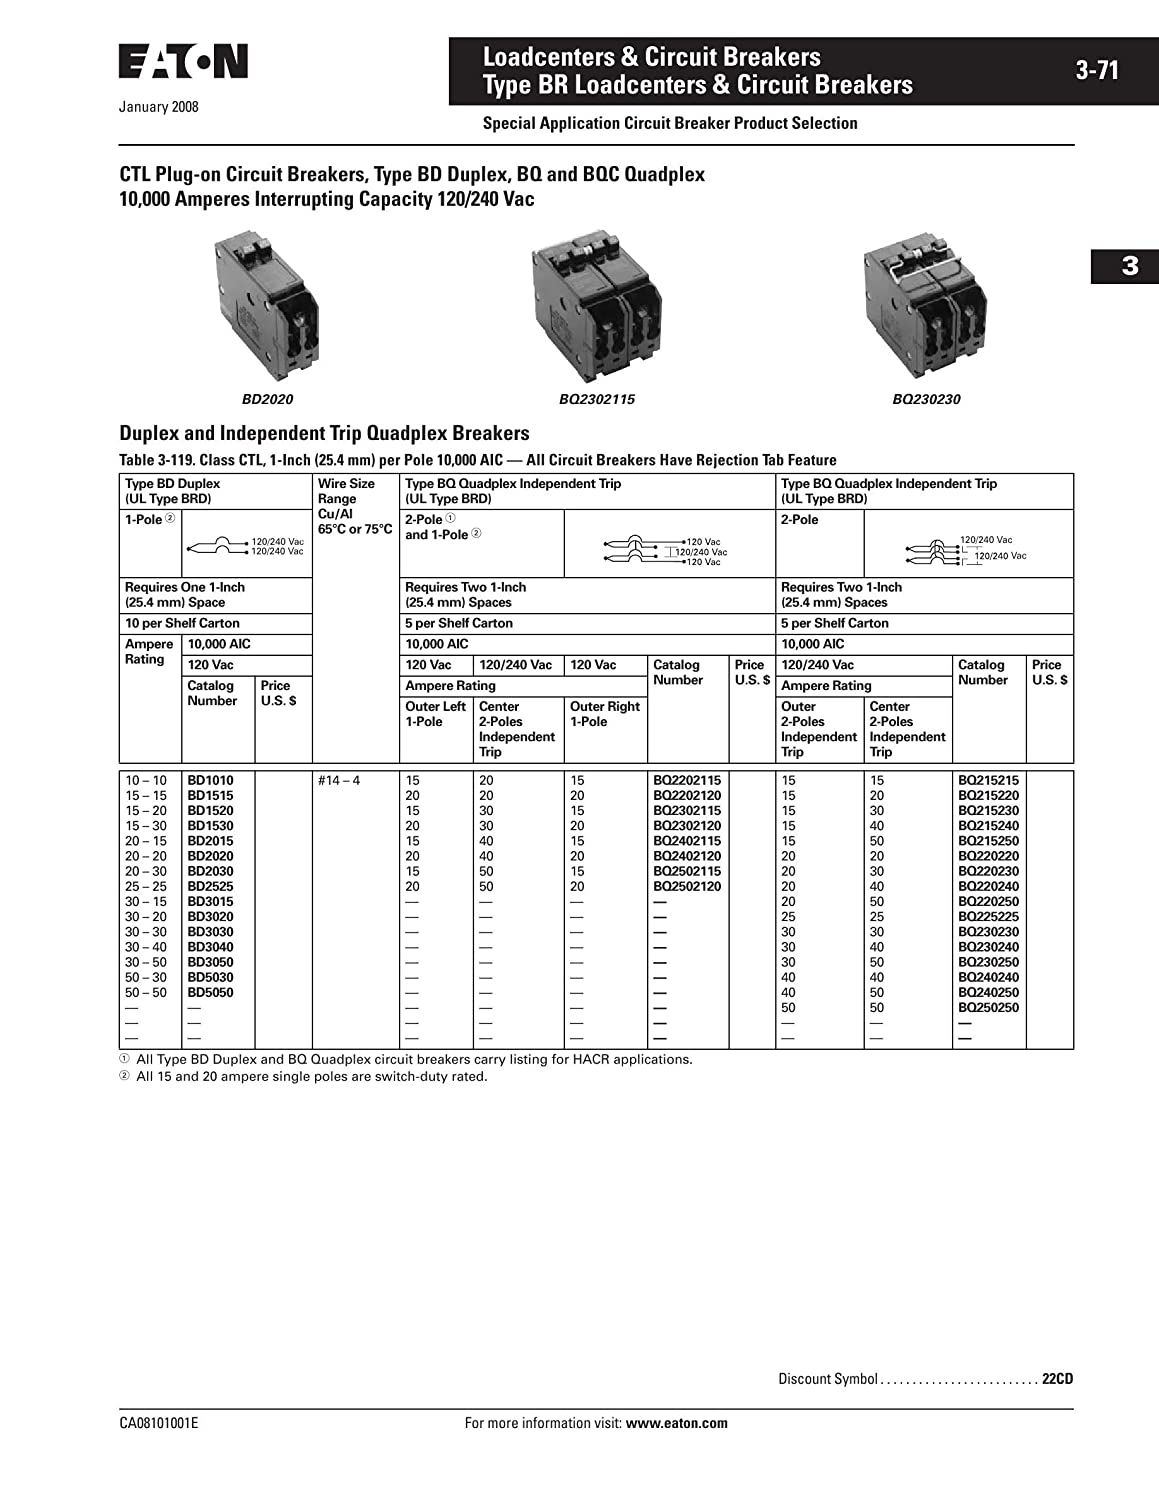 Eaton Cutler Hammer Bd2015 Type Br Duplex Twin 2 Pole 20a 15a Circuit Breaker Types Video Different Of Breakers Ehow Rejection Thermal